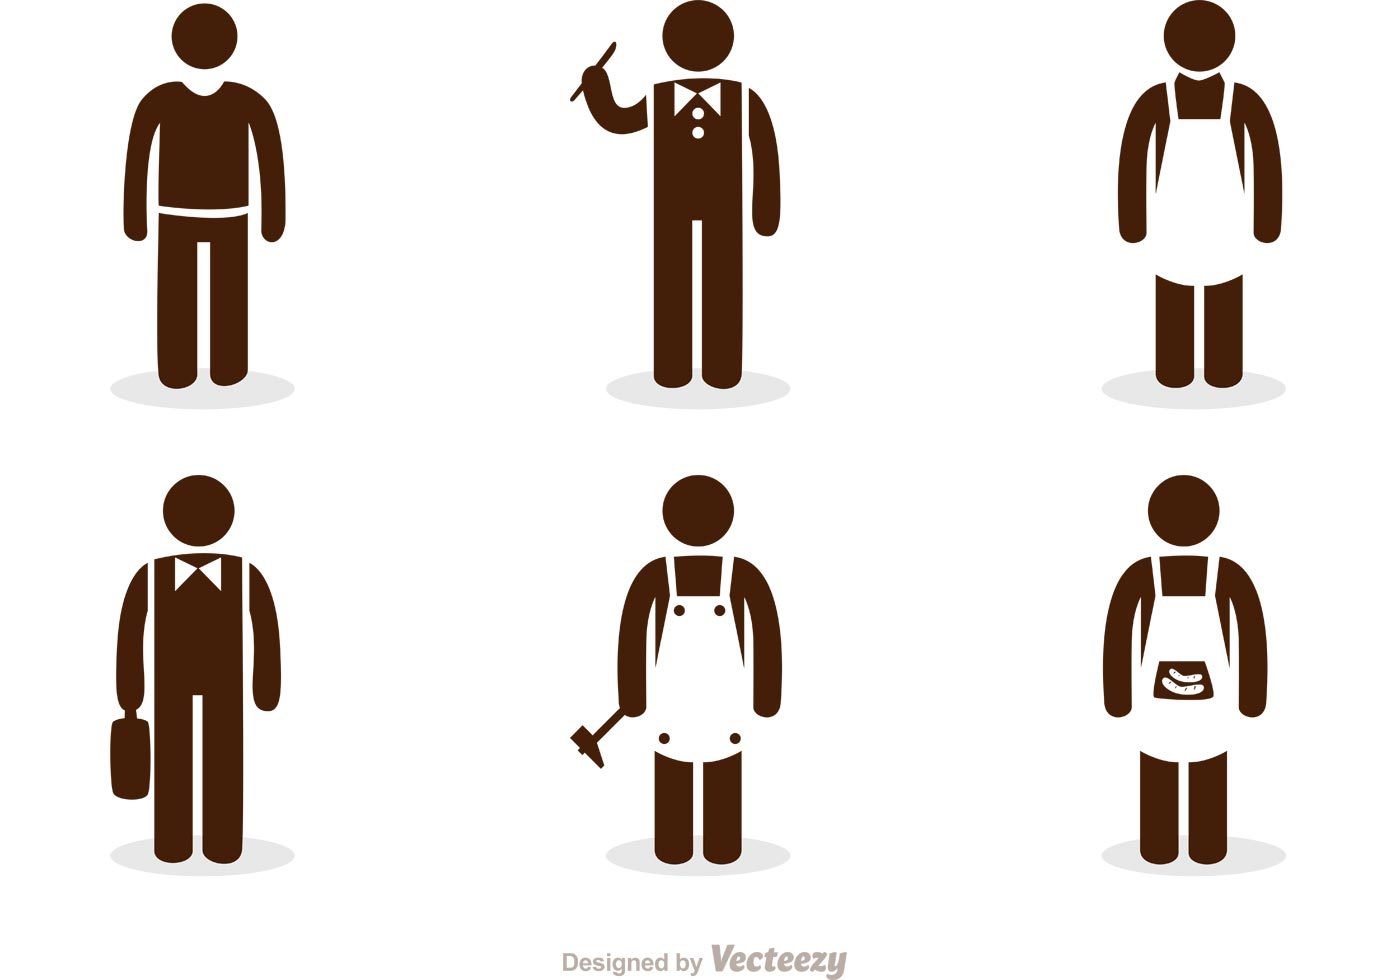 Work Stick Figure Icons Vector Pack - Download Free Vector ...